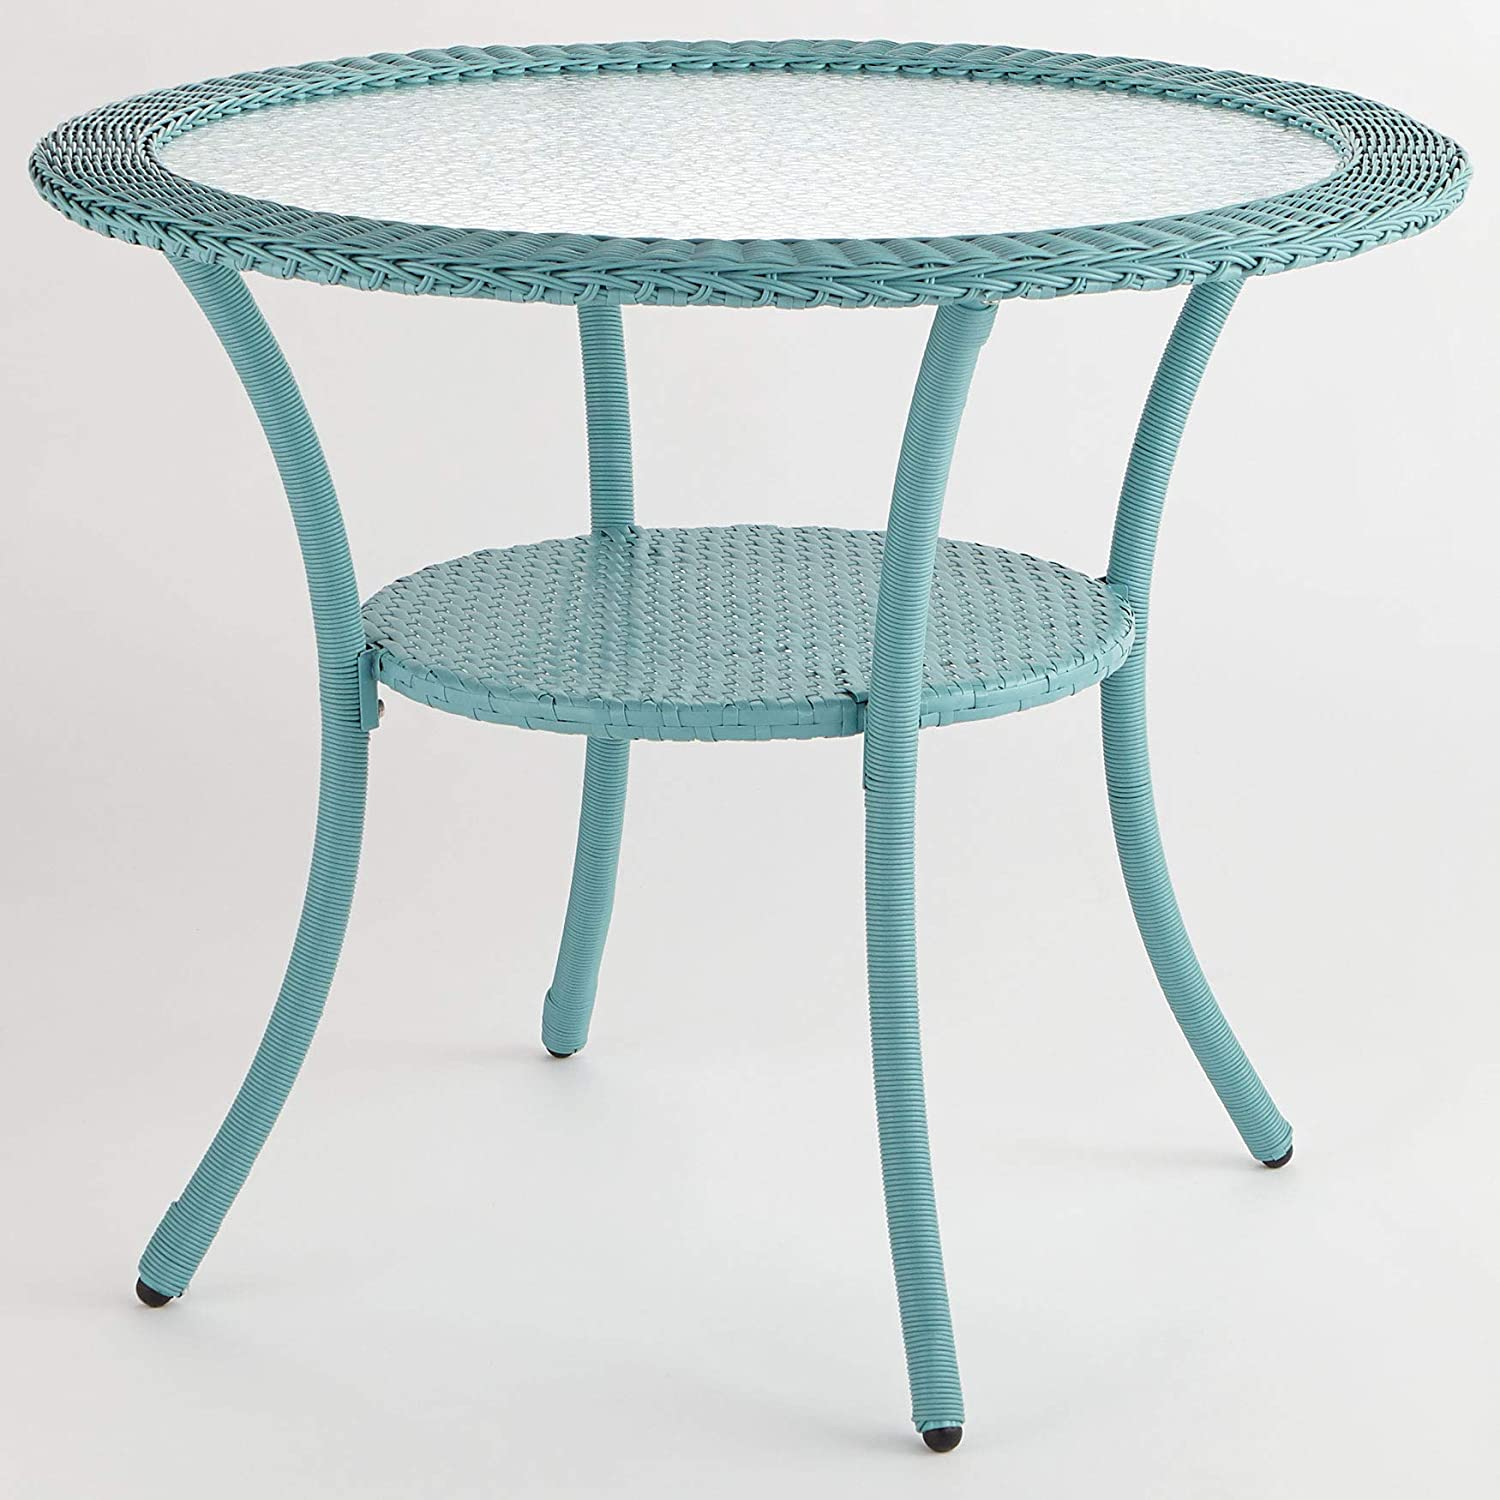 BrylaneHome Roma All-Weather Resin Wicker Bistro Table – Haze